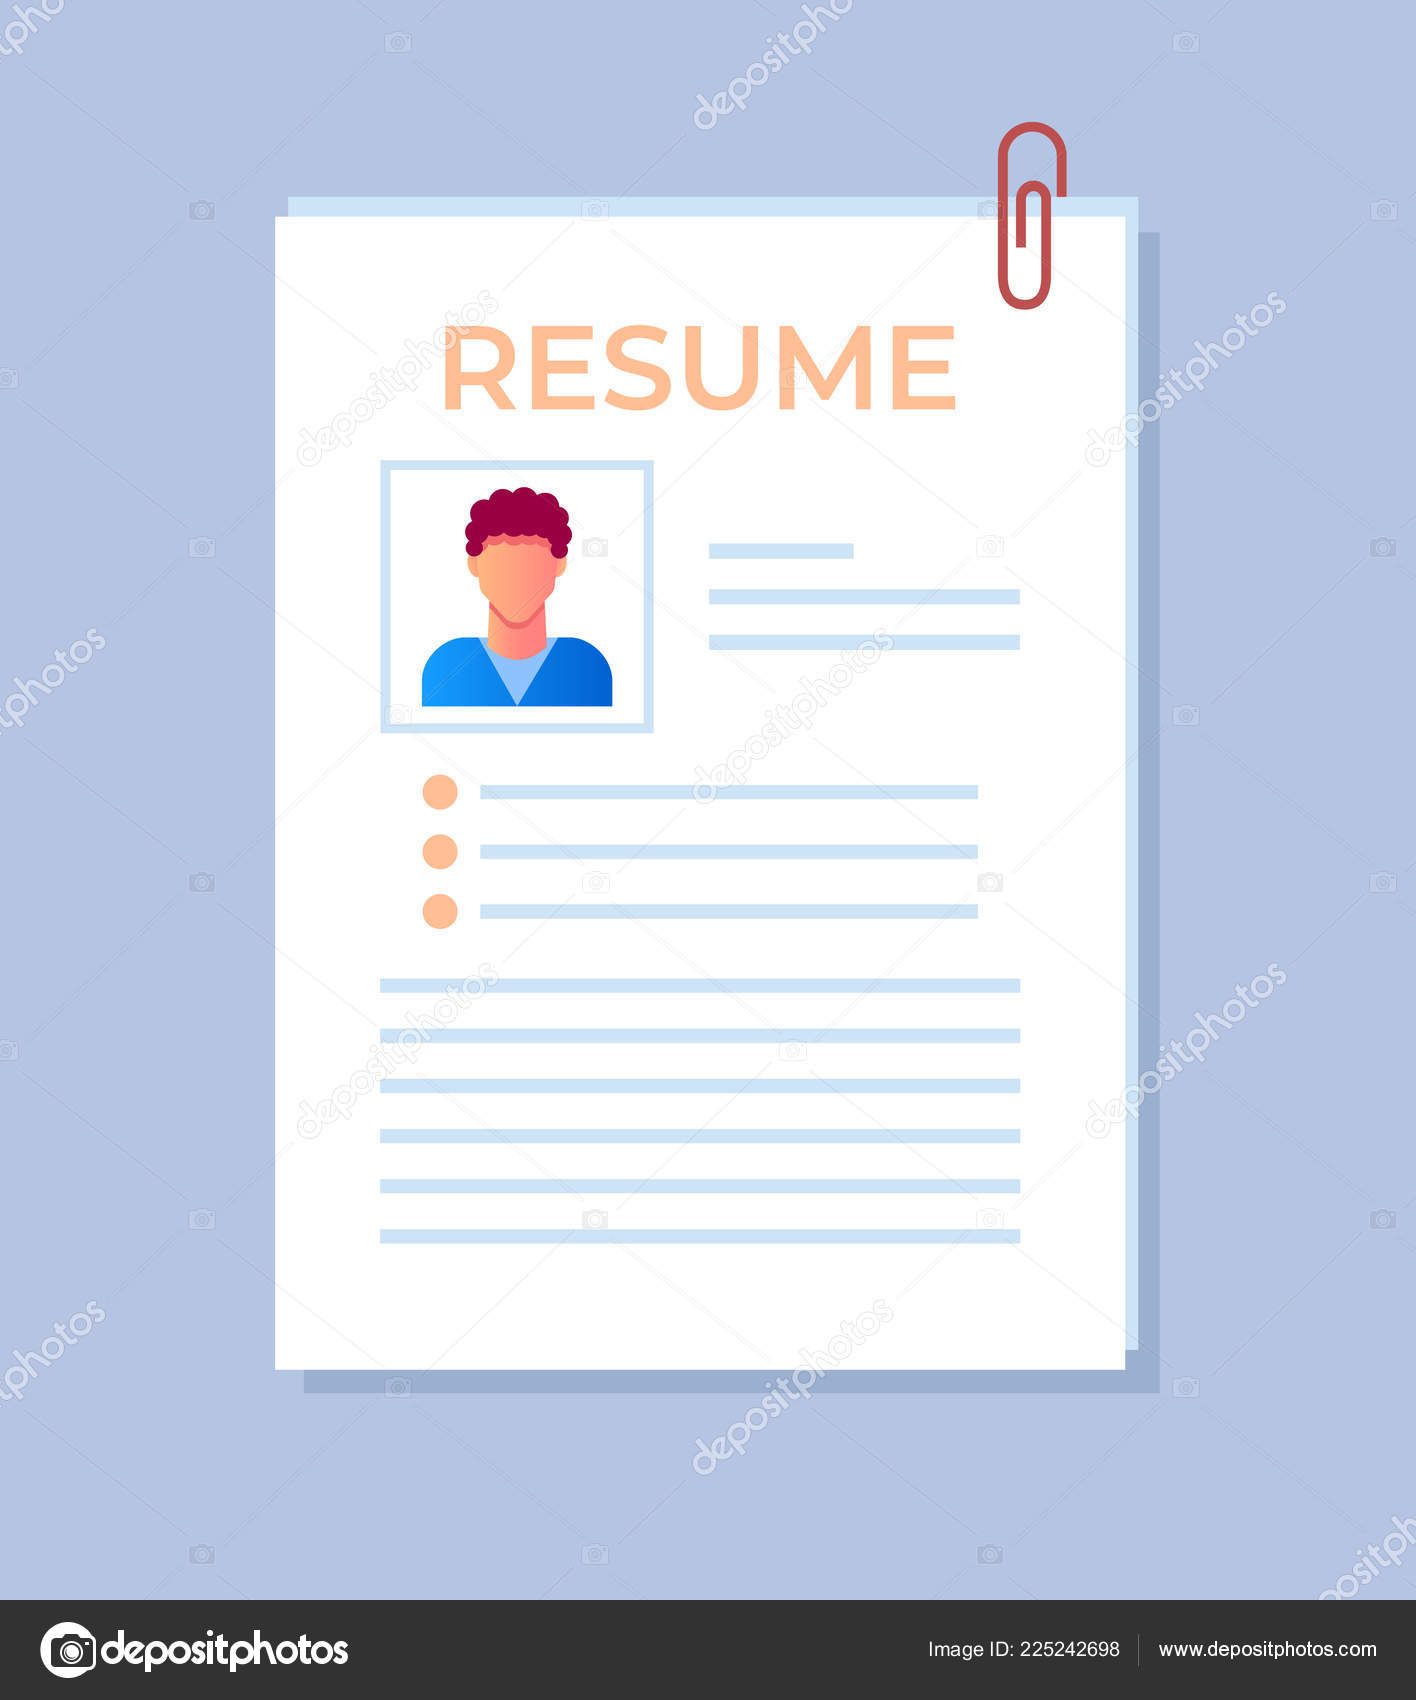 personal data in resume